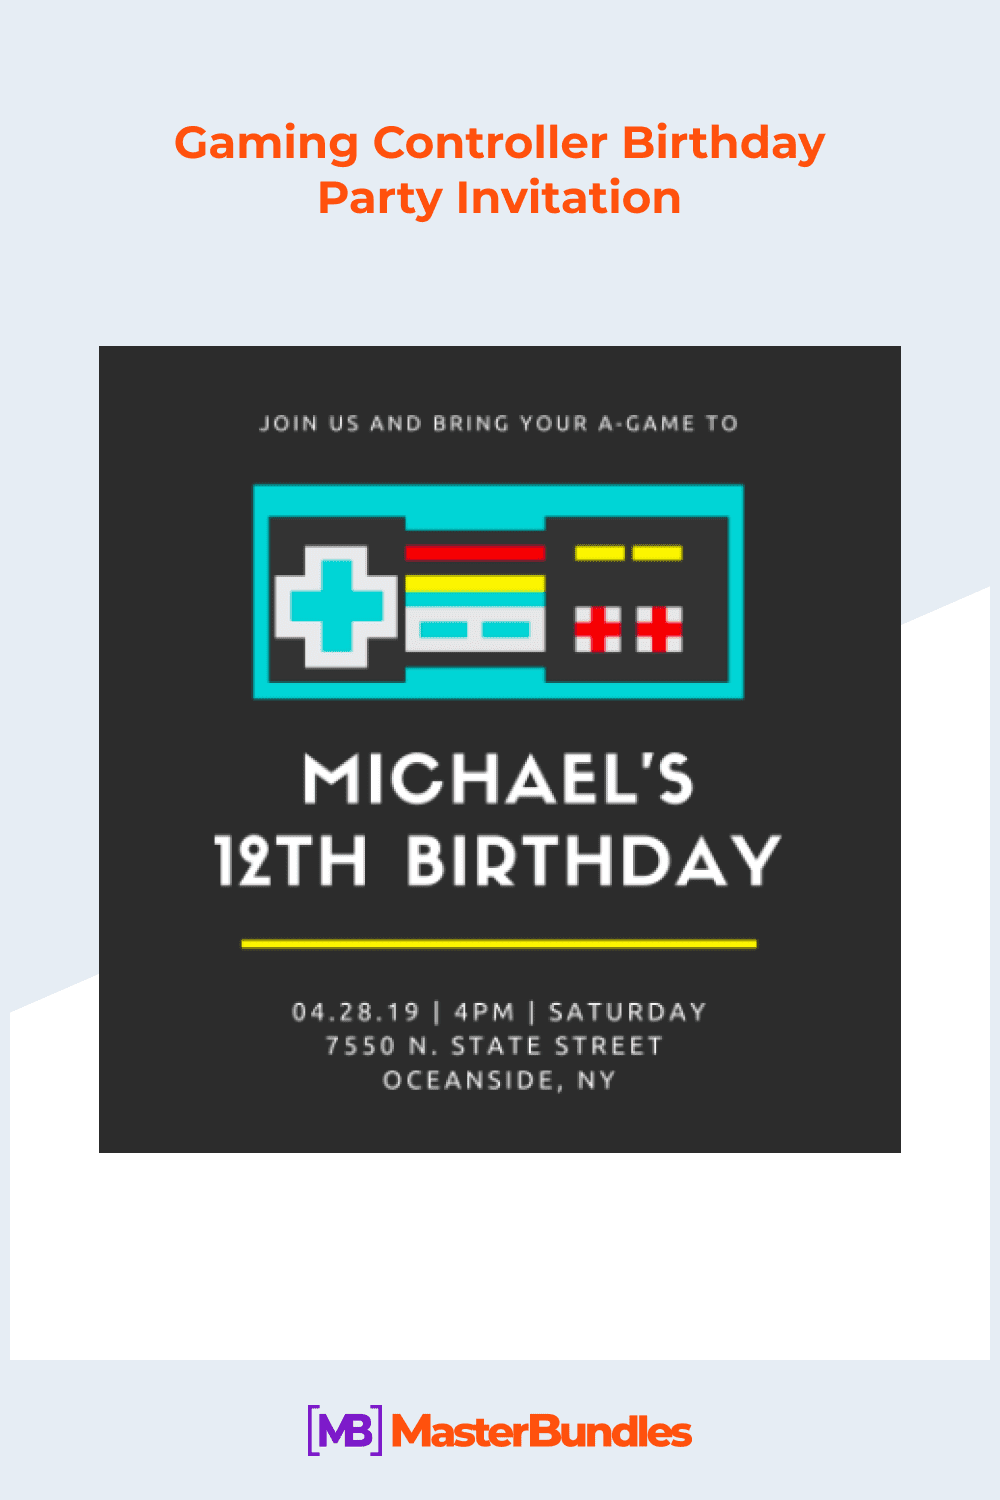 Gaming controller birthday party invitation.